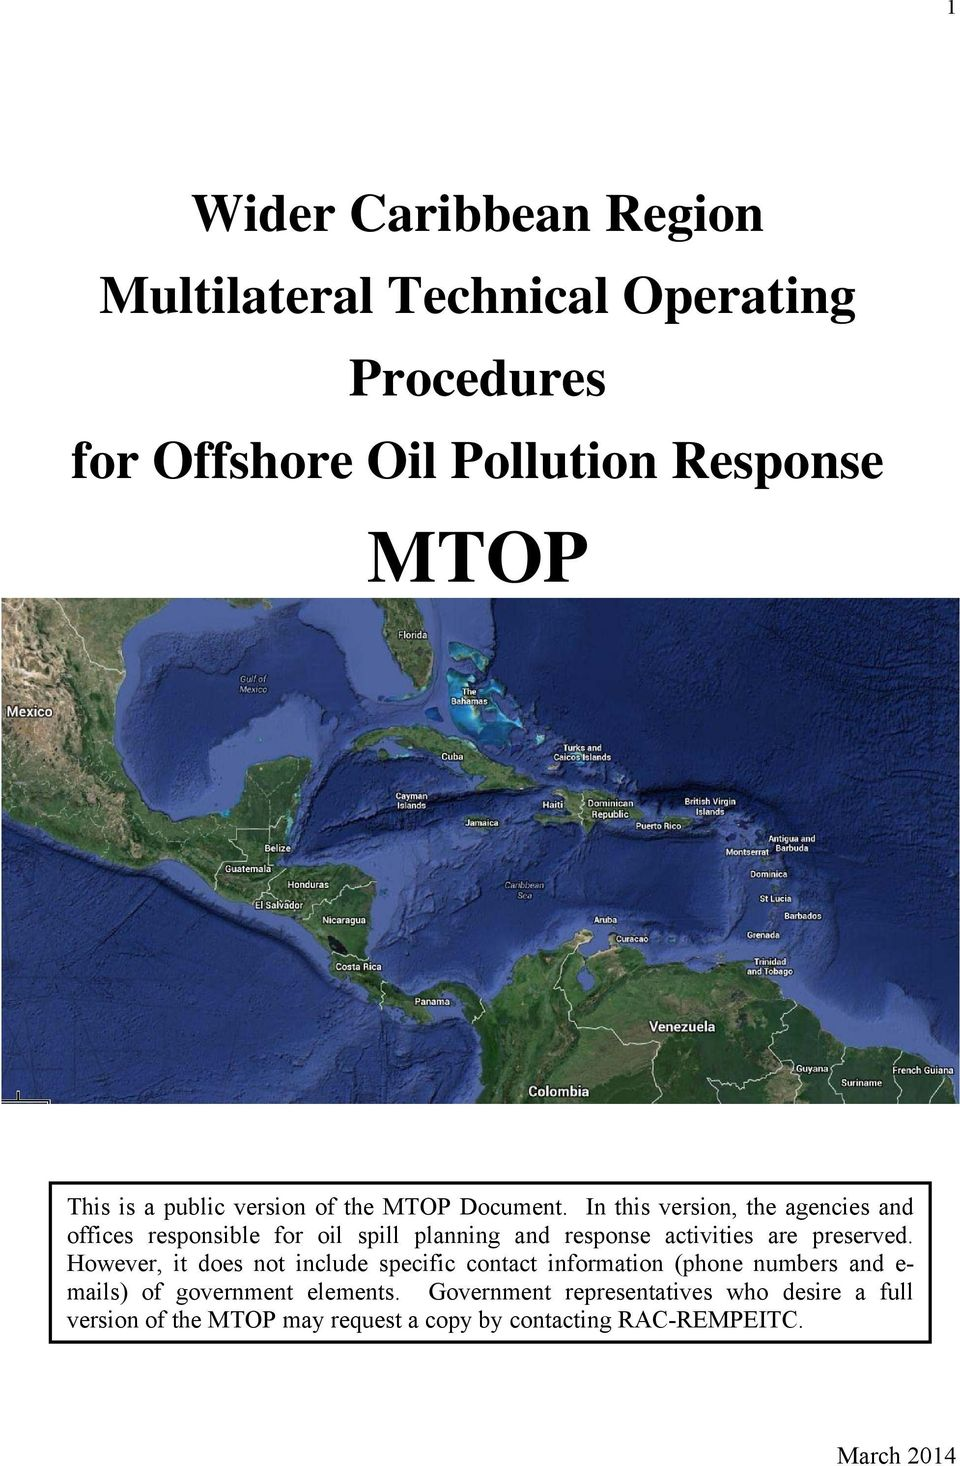 In this version, the agencies and offices responsible for oil spill planning and response activities are preserved.